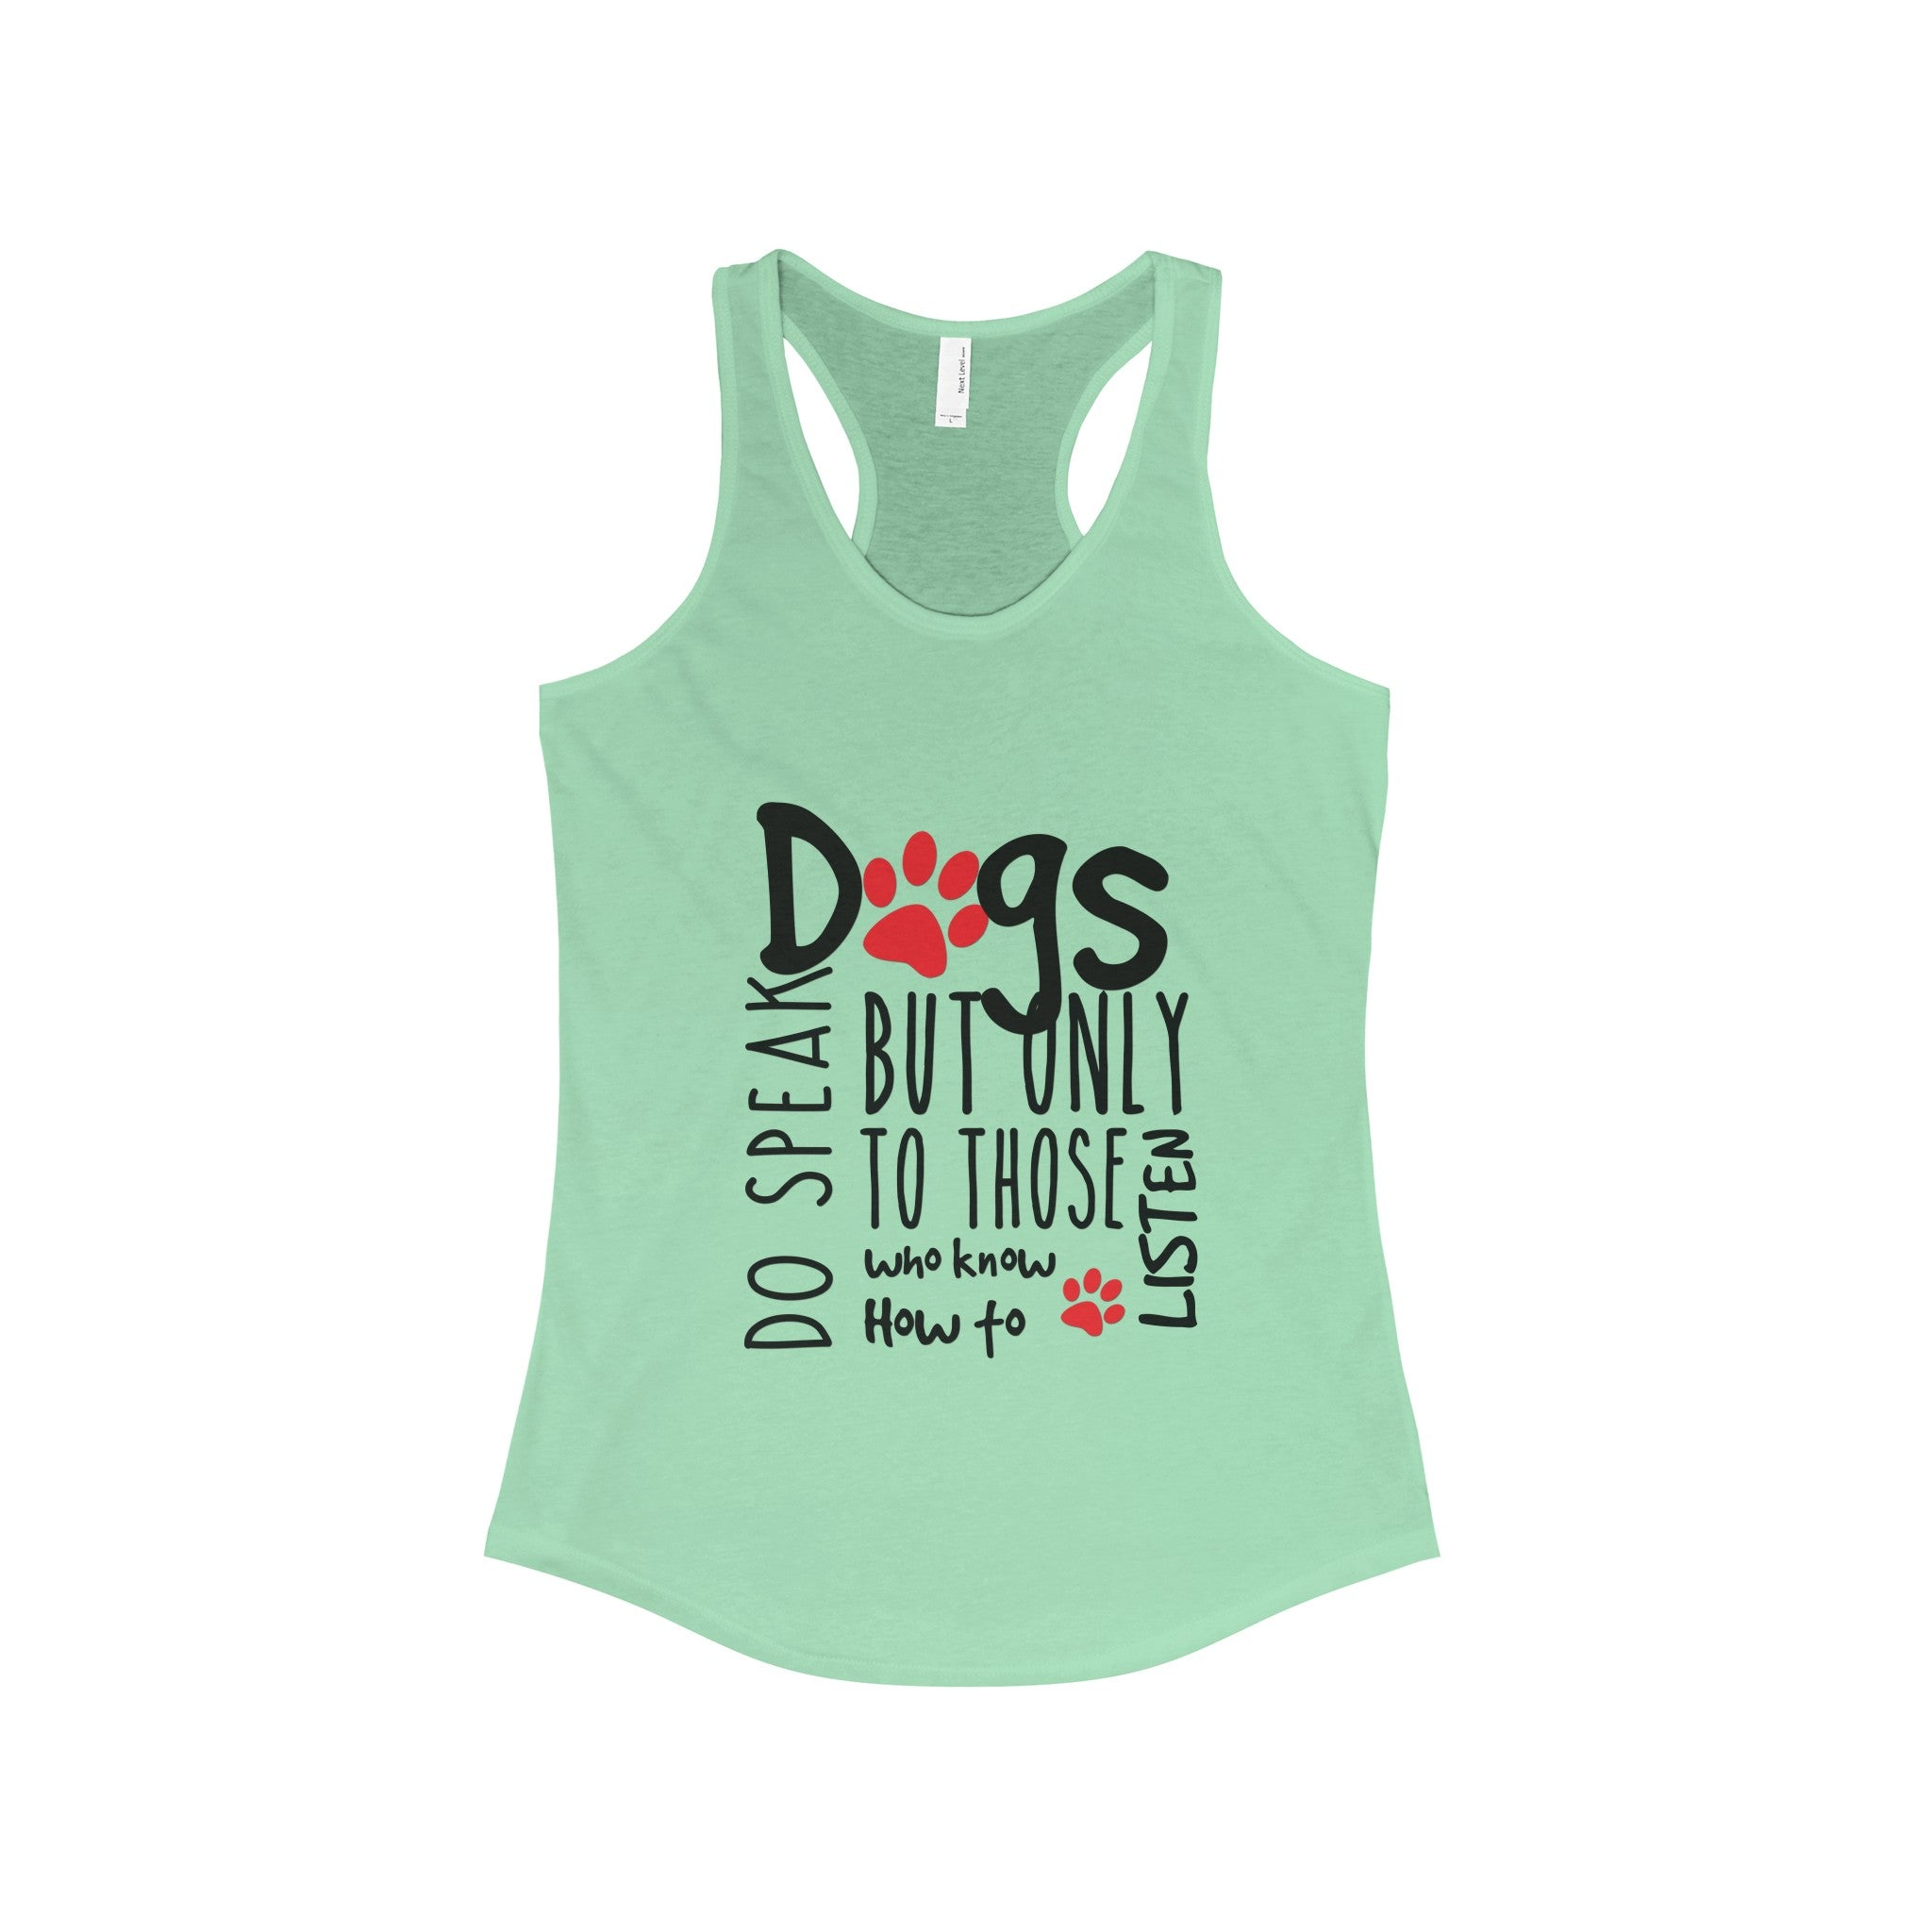 Dogs Do Speak But Only To Those Who Know How To Listen   Womans Tank Top